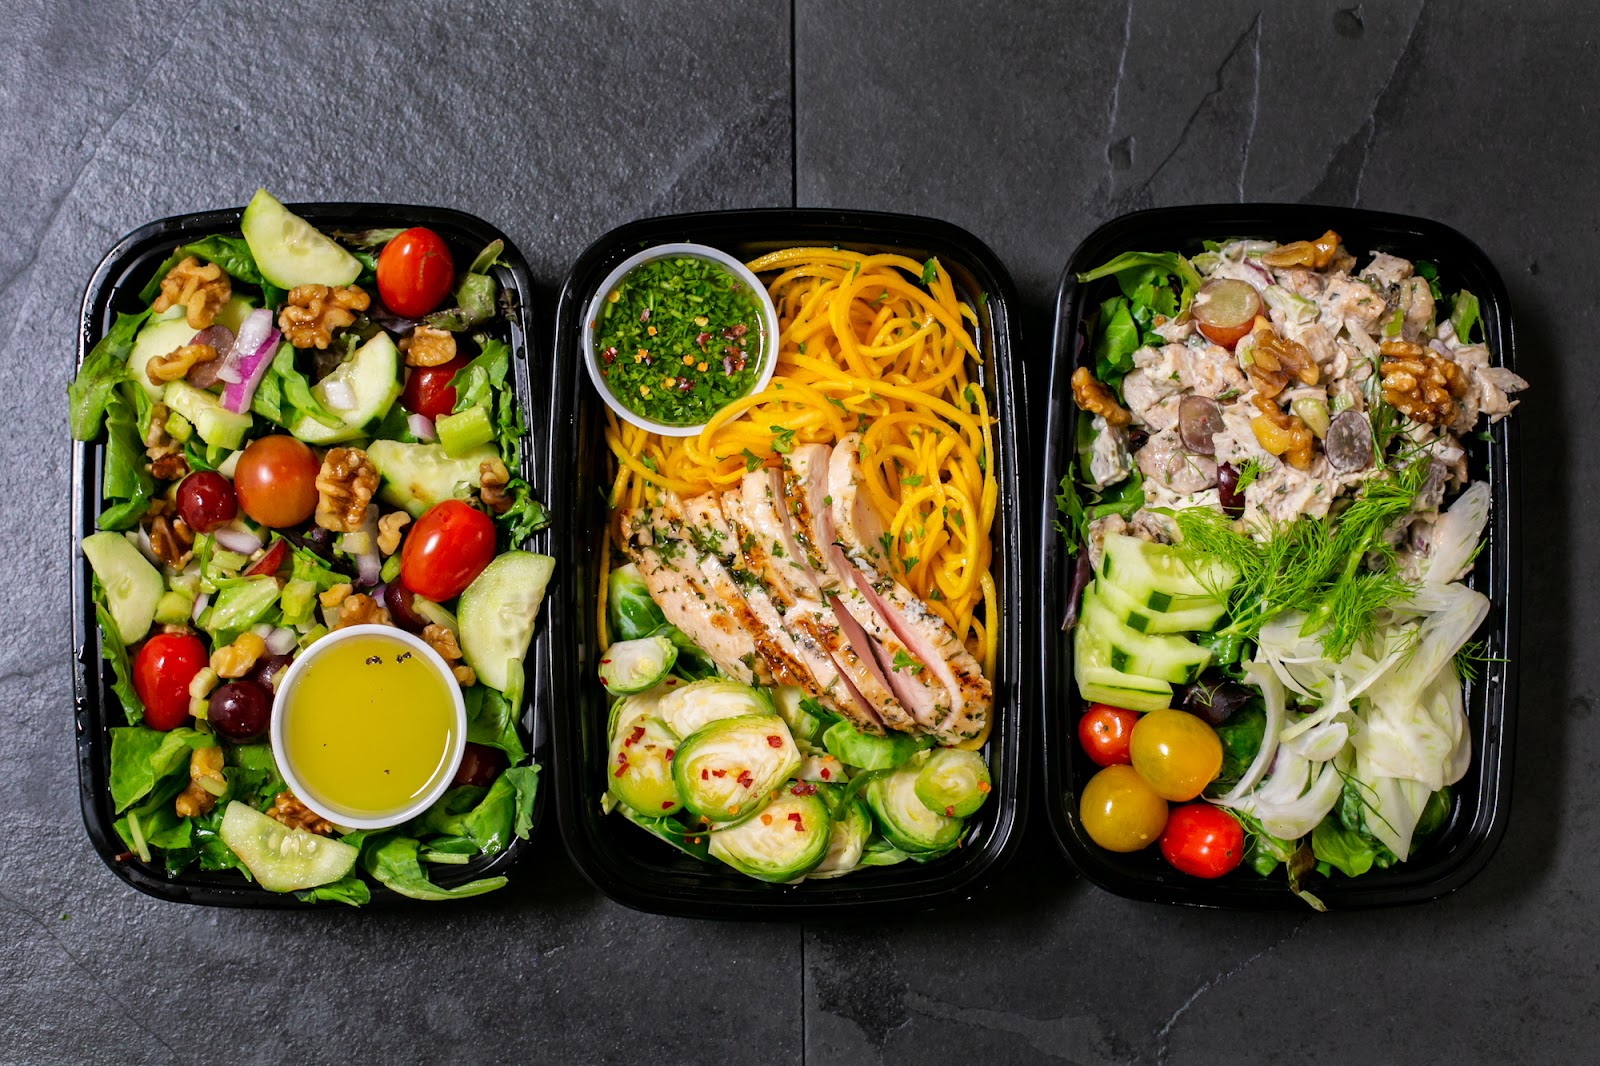 Check Out the 10 Best Paleo Meal Delivery Services